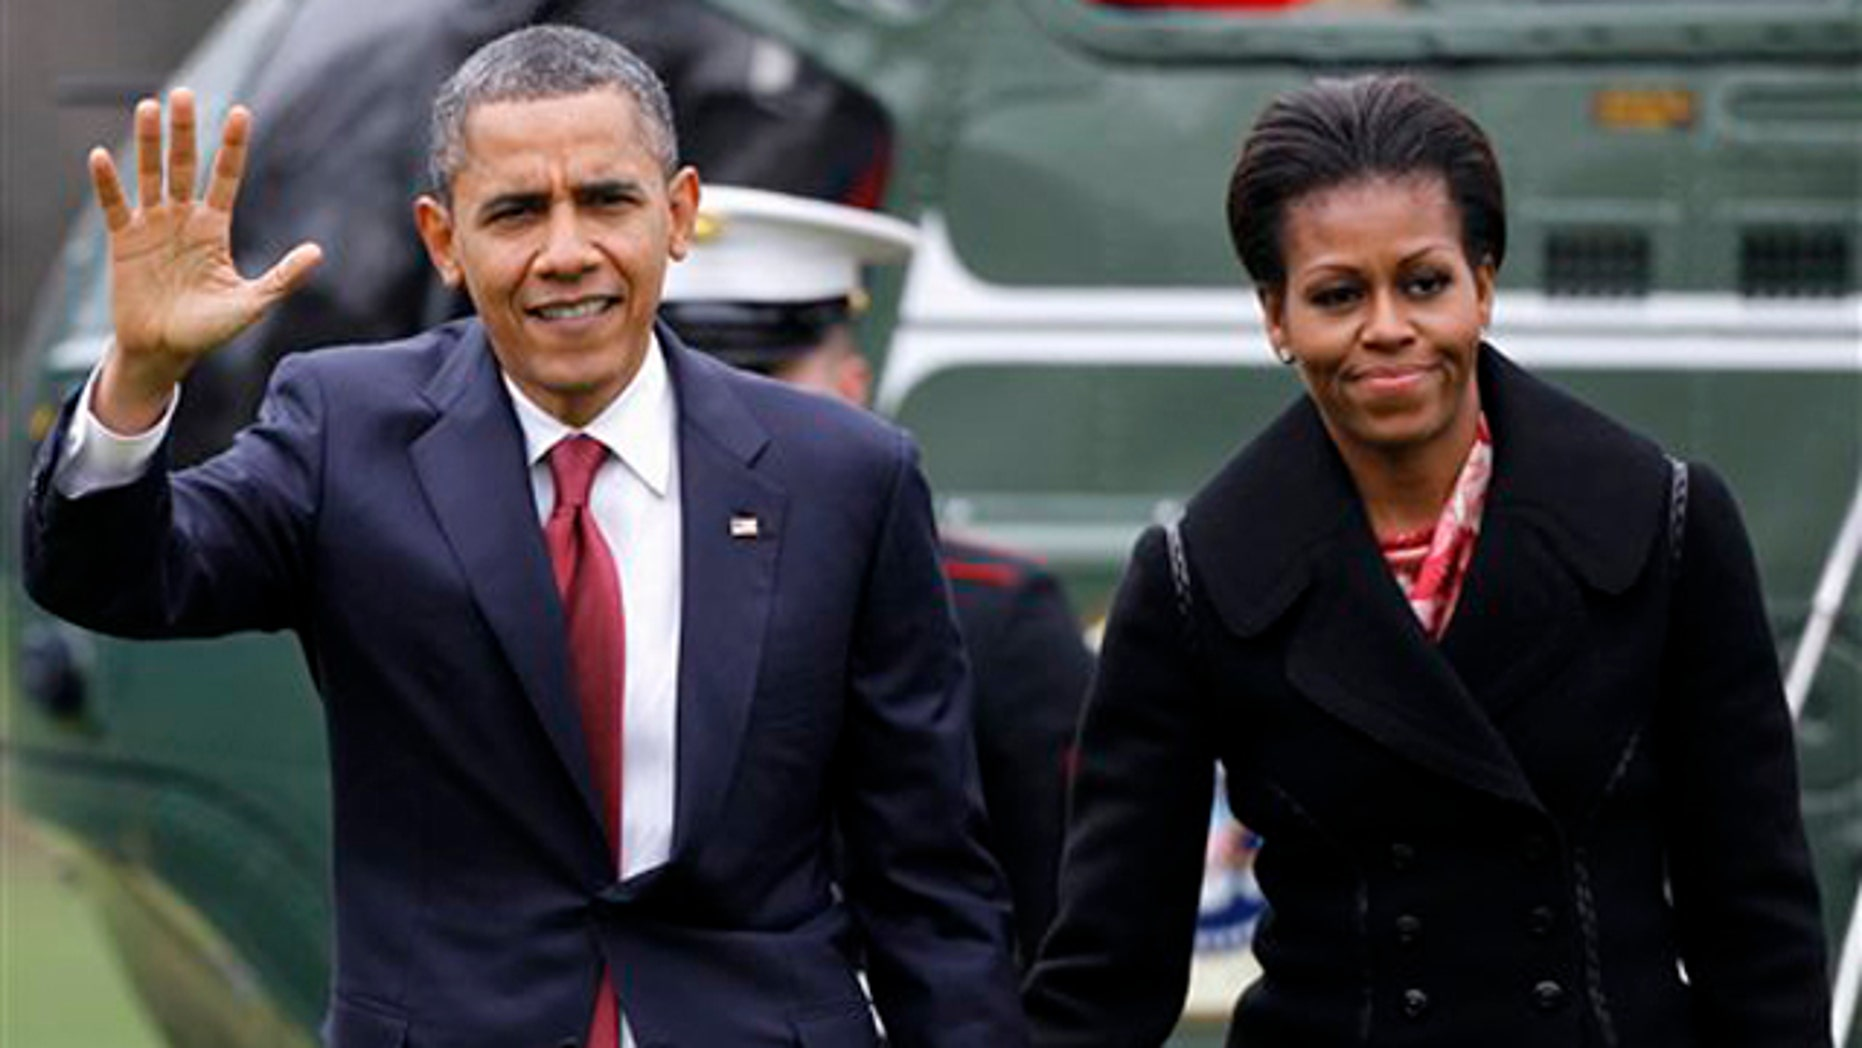 Dec. 14, 2011: President Obama and first lady Michelle Obama arrive on the South Lawn of the White House in Washington.